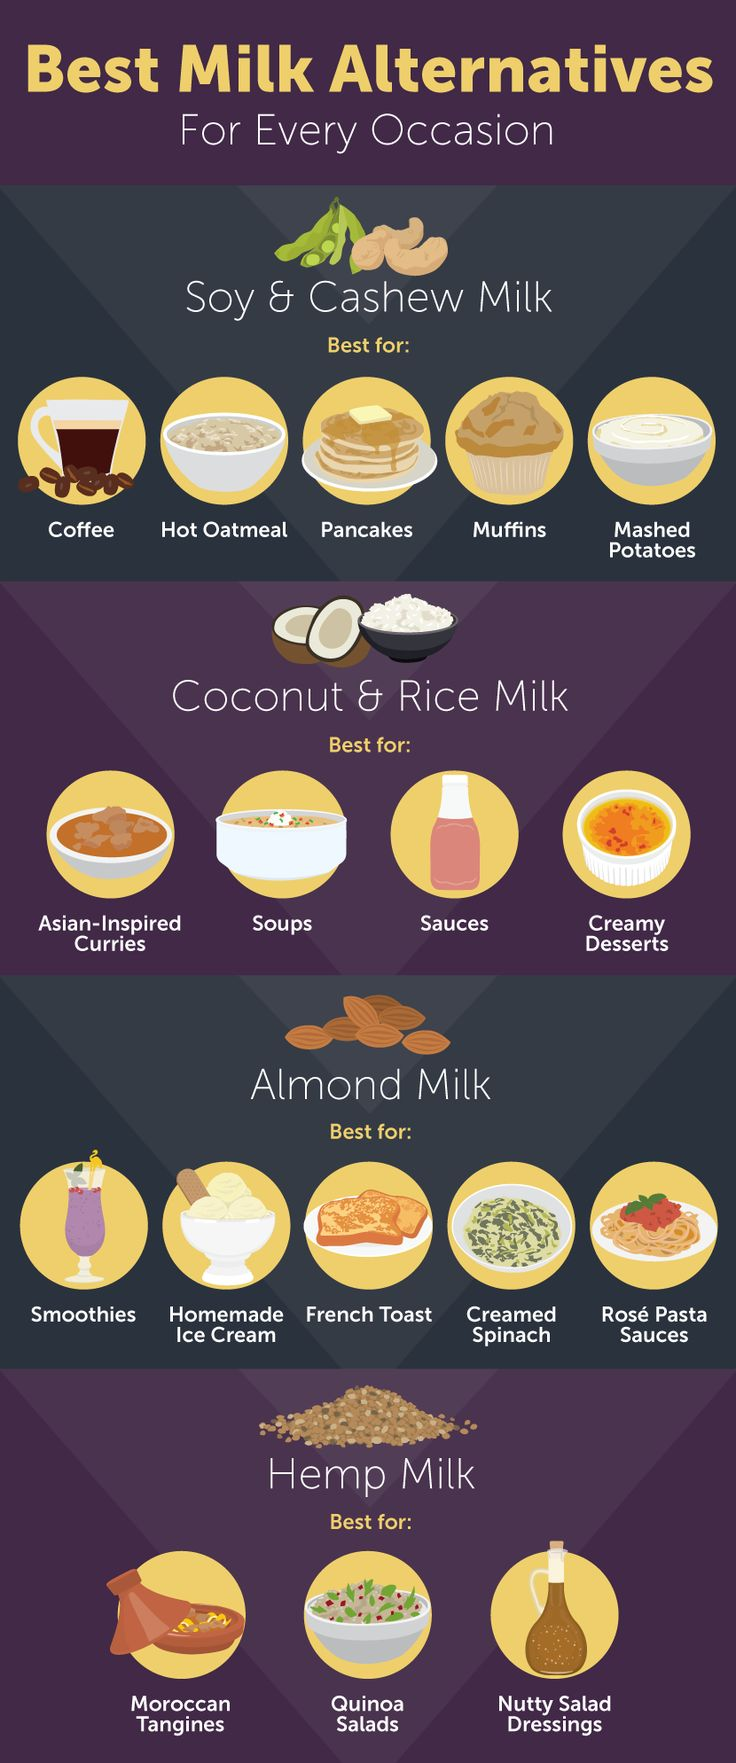 Here's how they stack up nutritionally. Plus, the best uses for the 6 most popular milk alternatives.